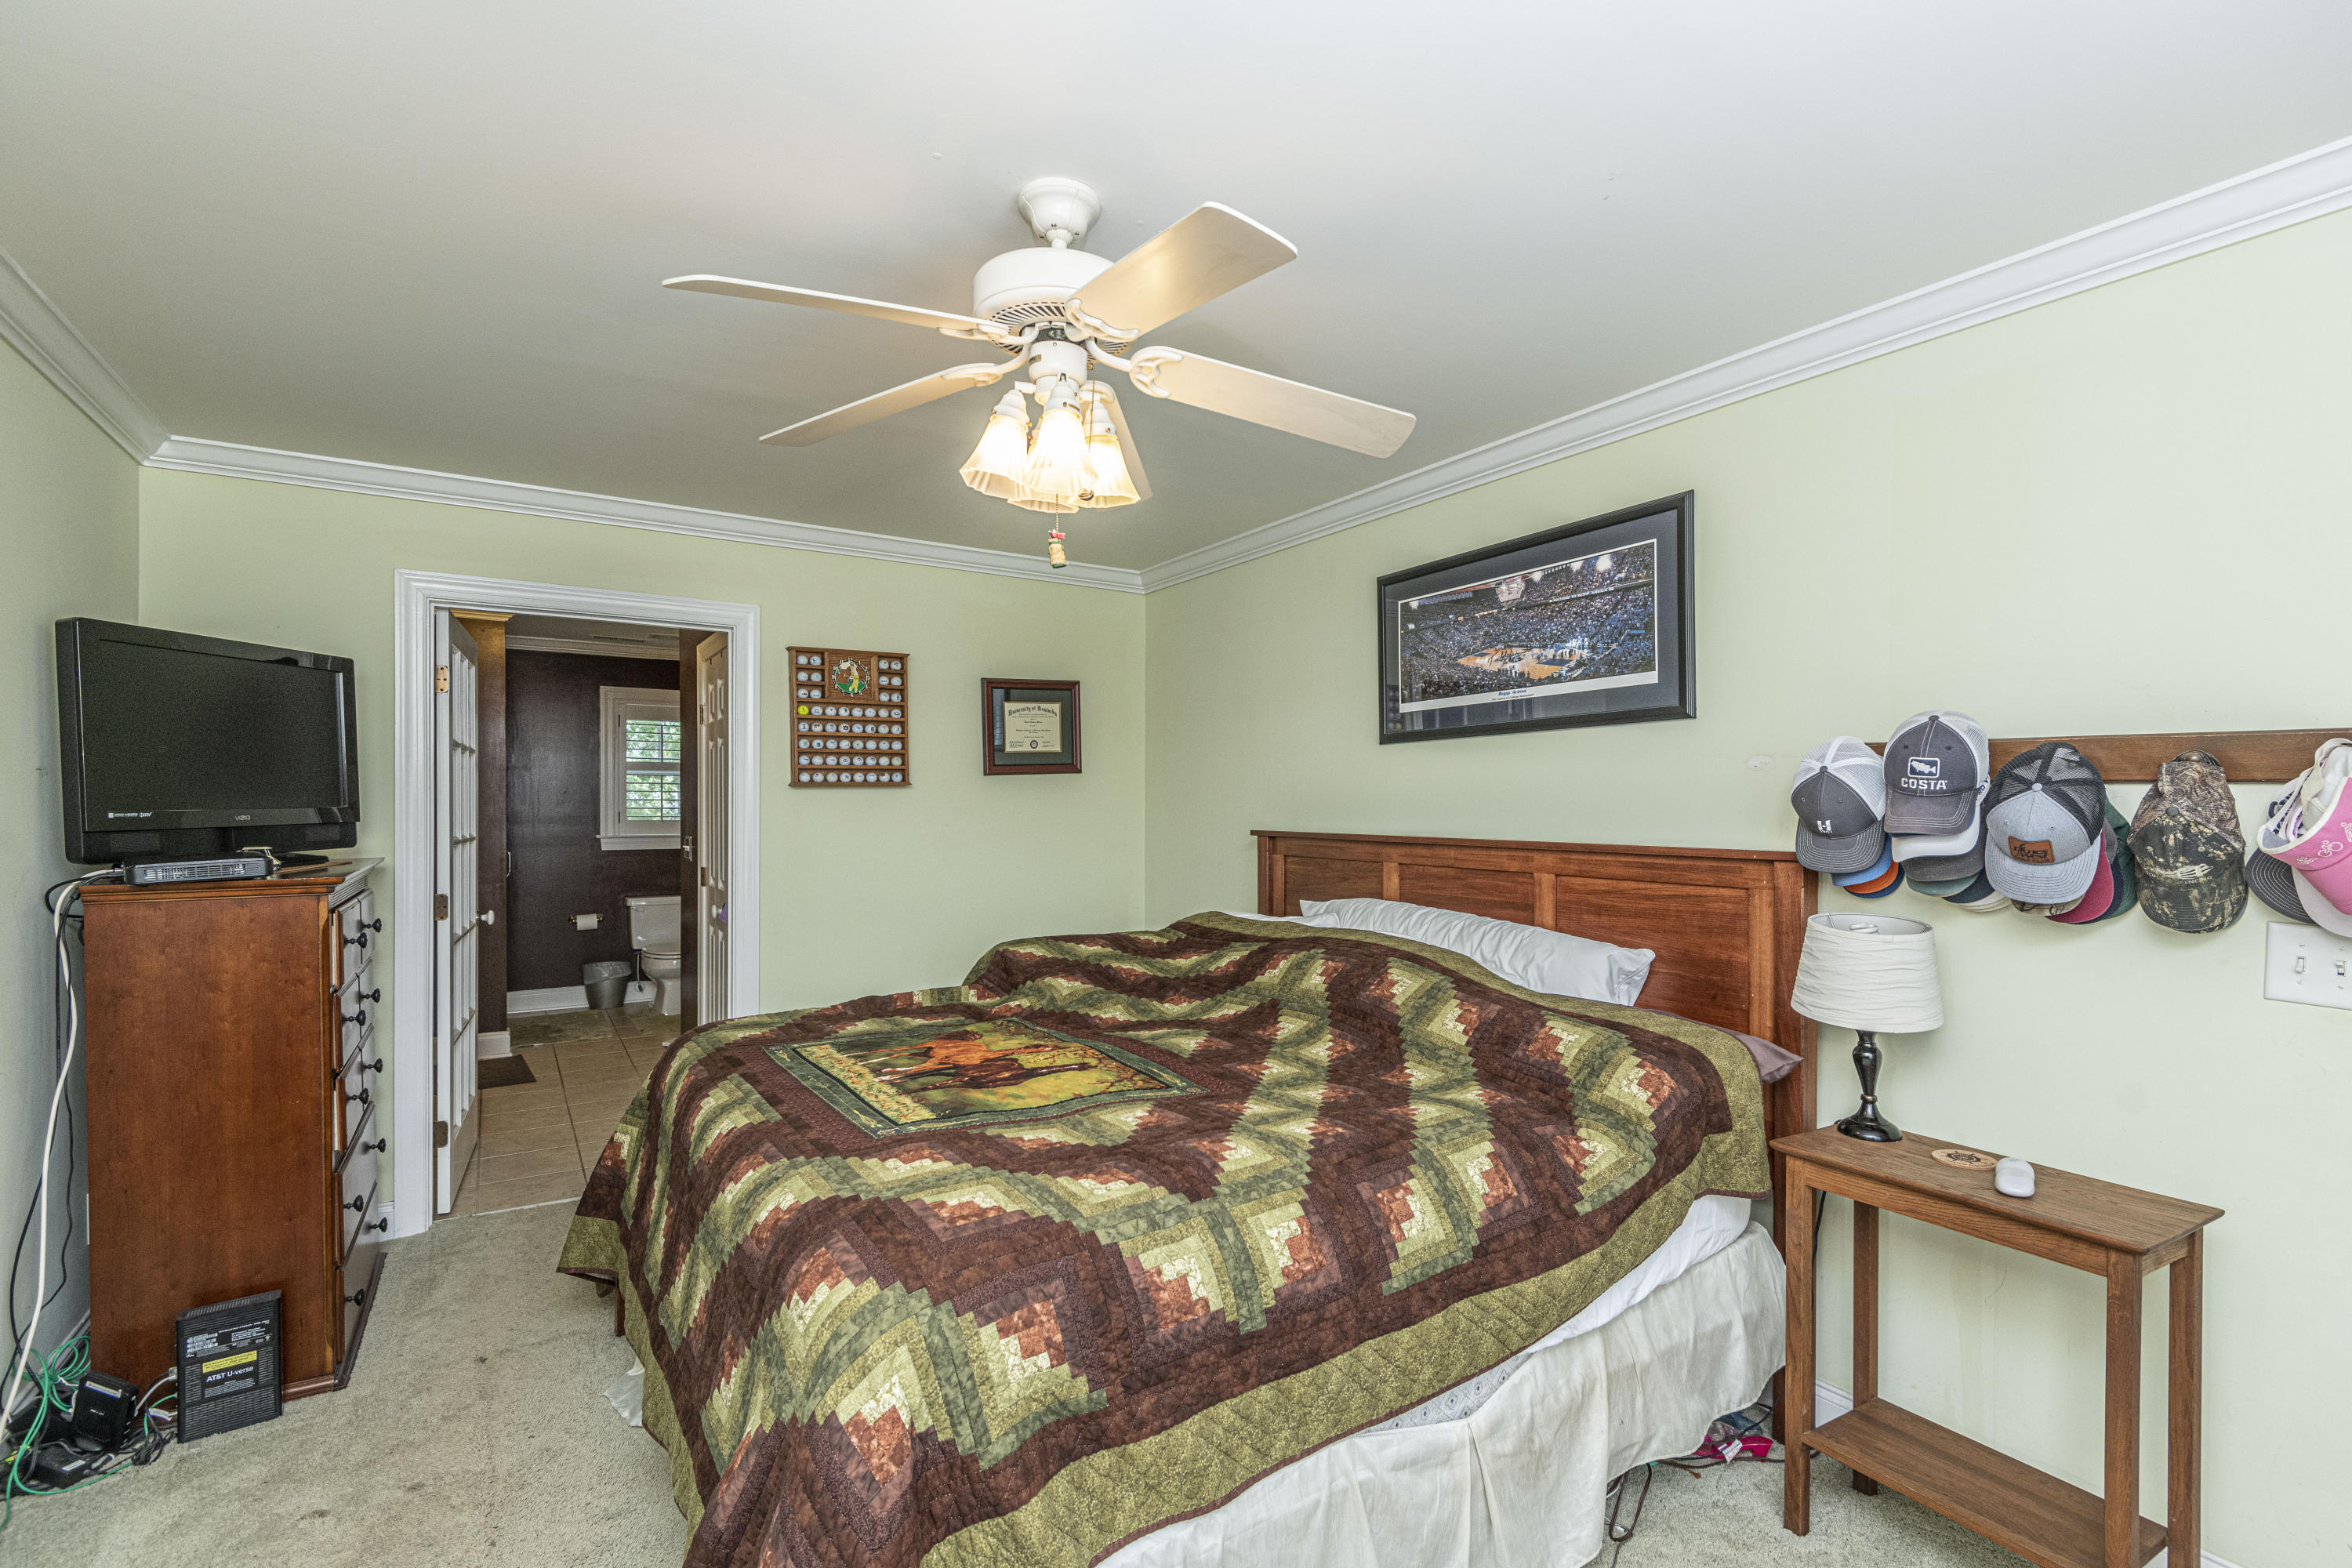 The Reserve at Wando East Homes For Sale - 1681 Lauda, Mount Pleasant, SC - 18